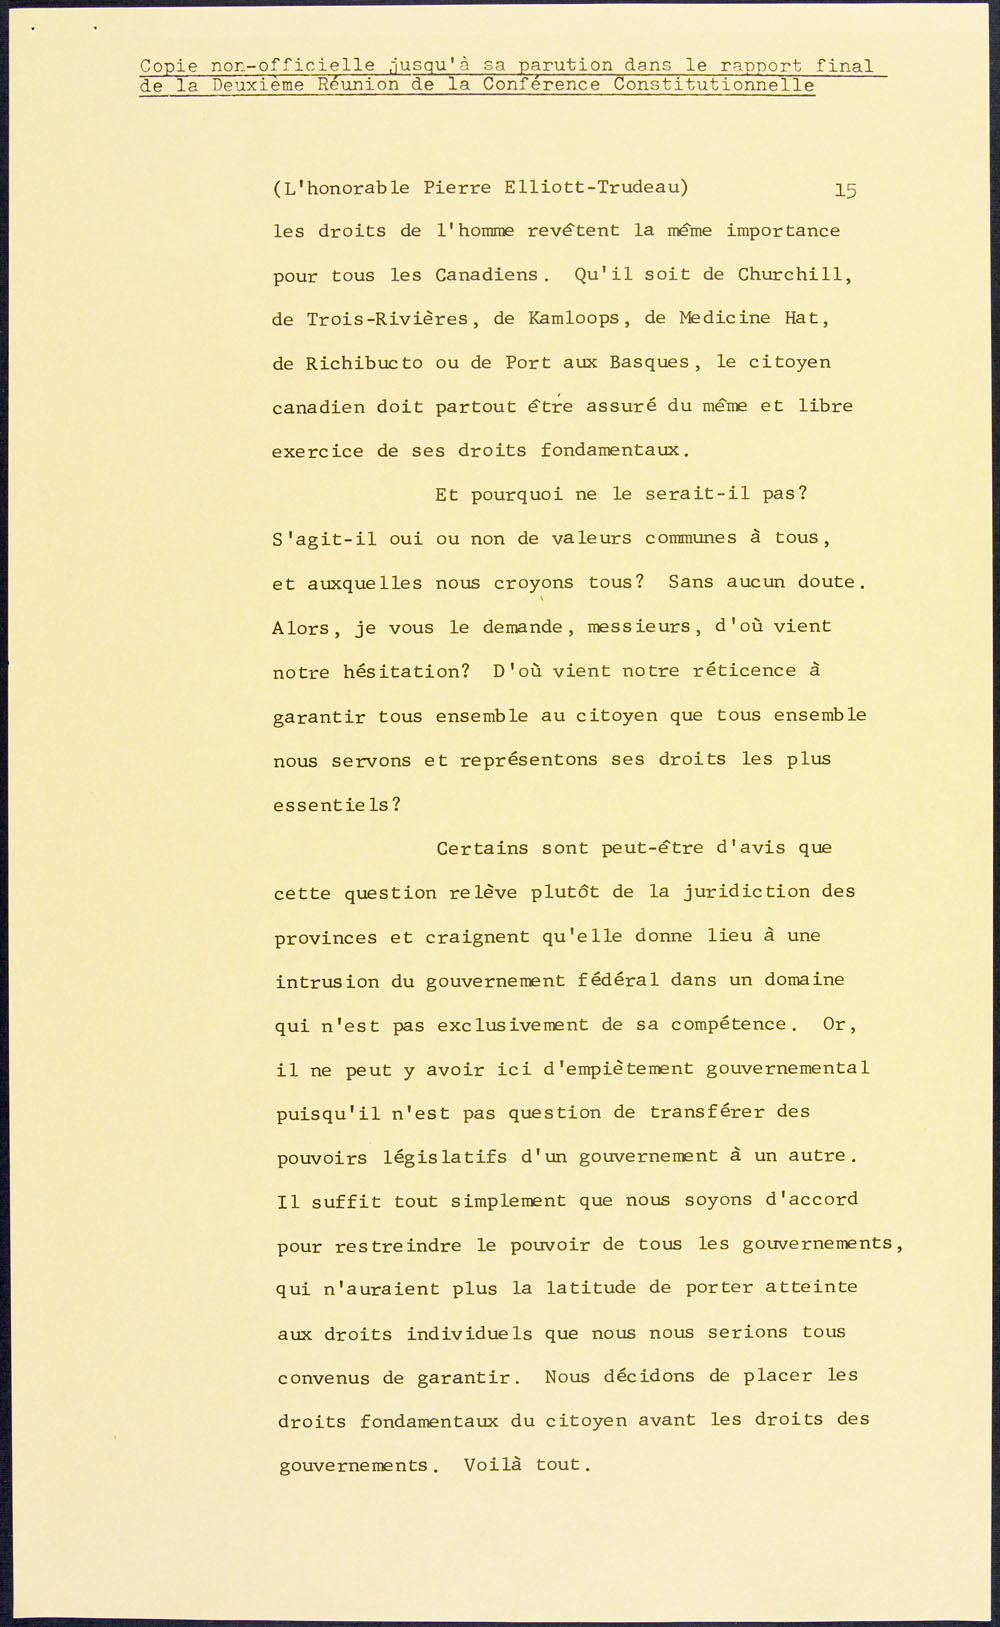 Page from a speech on Canadian rights and freedoms, delivered by Prime Minister Pierre Elliott Trudeau at the Federal-Provincial Conference on the Constitution, February 10, 1969